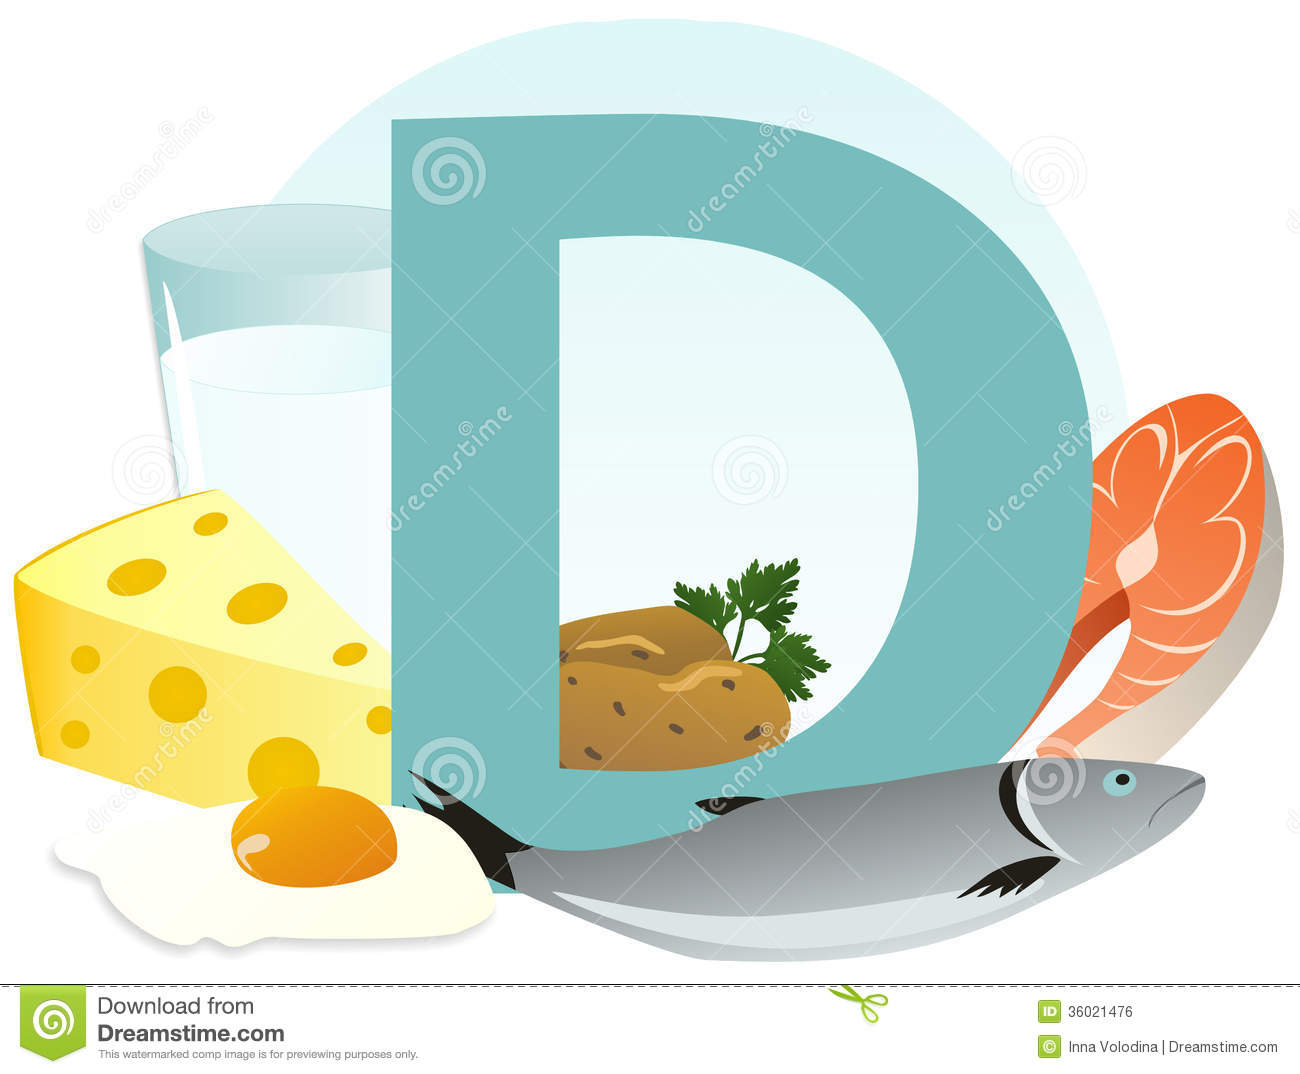 Royalty Free Stock Image  Products Containing Vitamin D